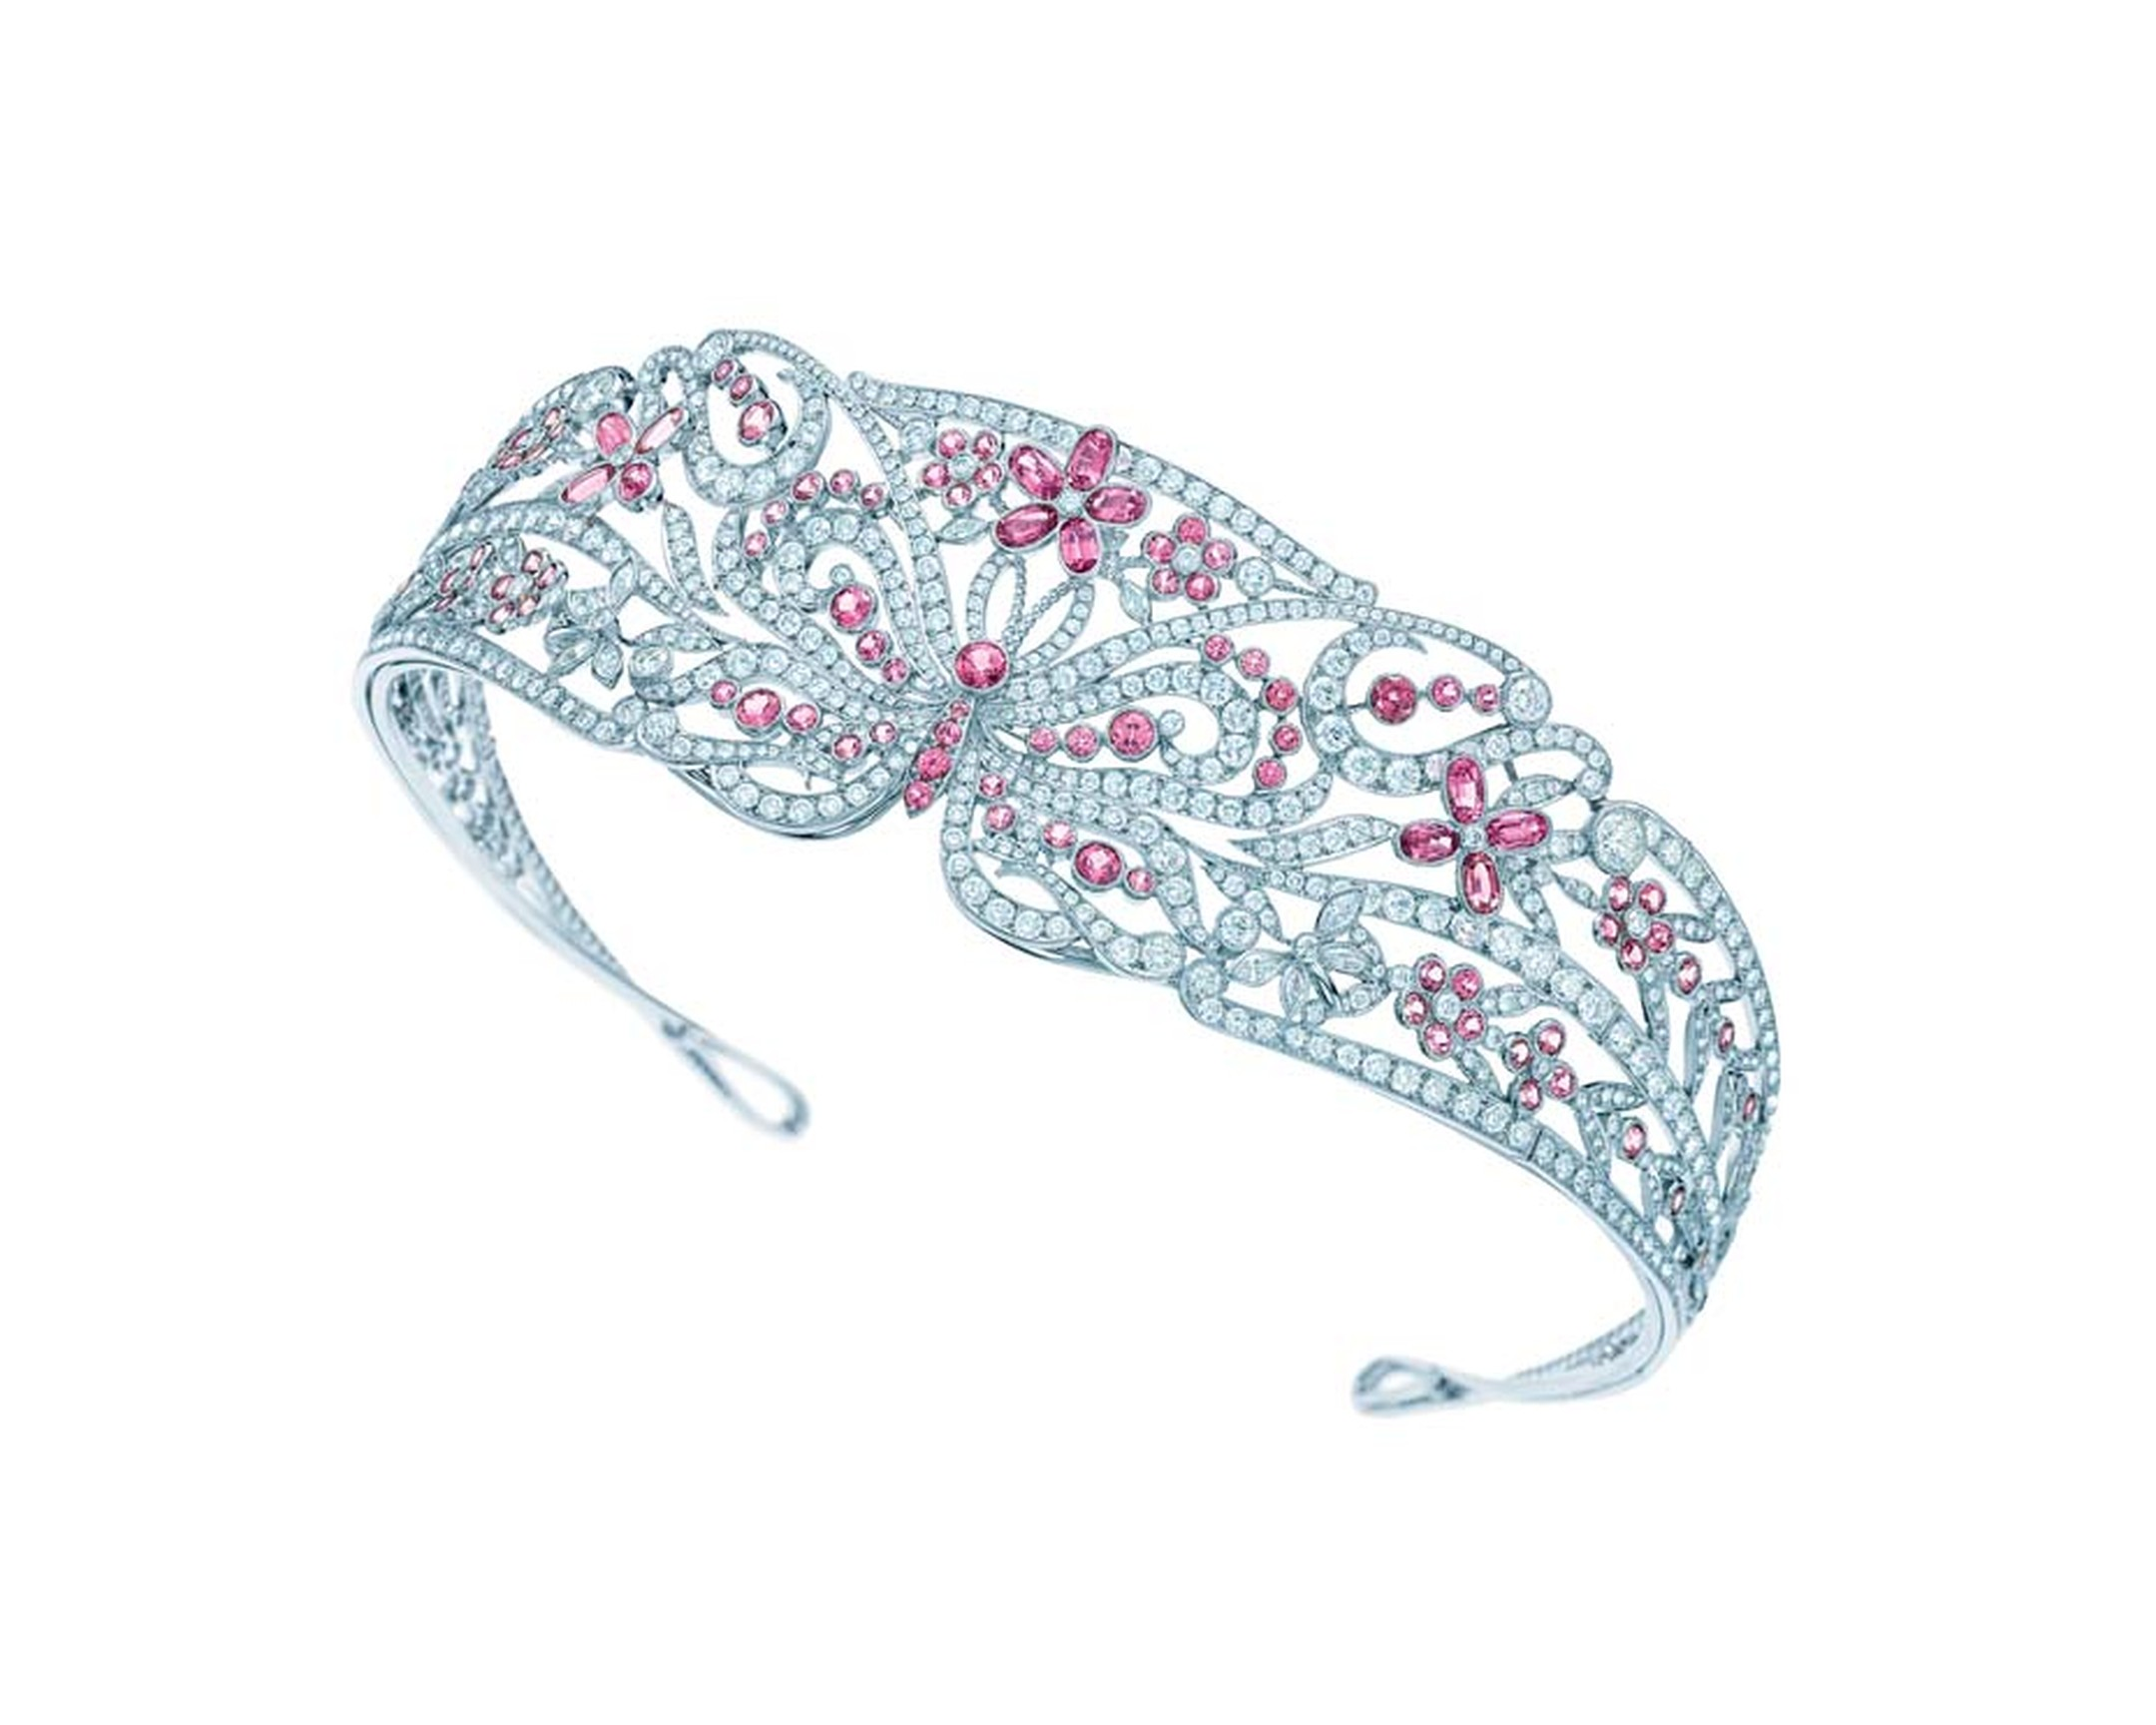 Tiffany & Co. tiara from the high jewellery Blue Book collection with a butterfly motif crafted from platinum, pink spinels and more than 20.00cts of white diamonds.